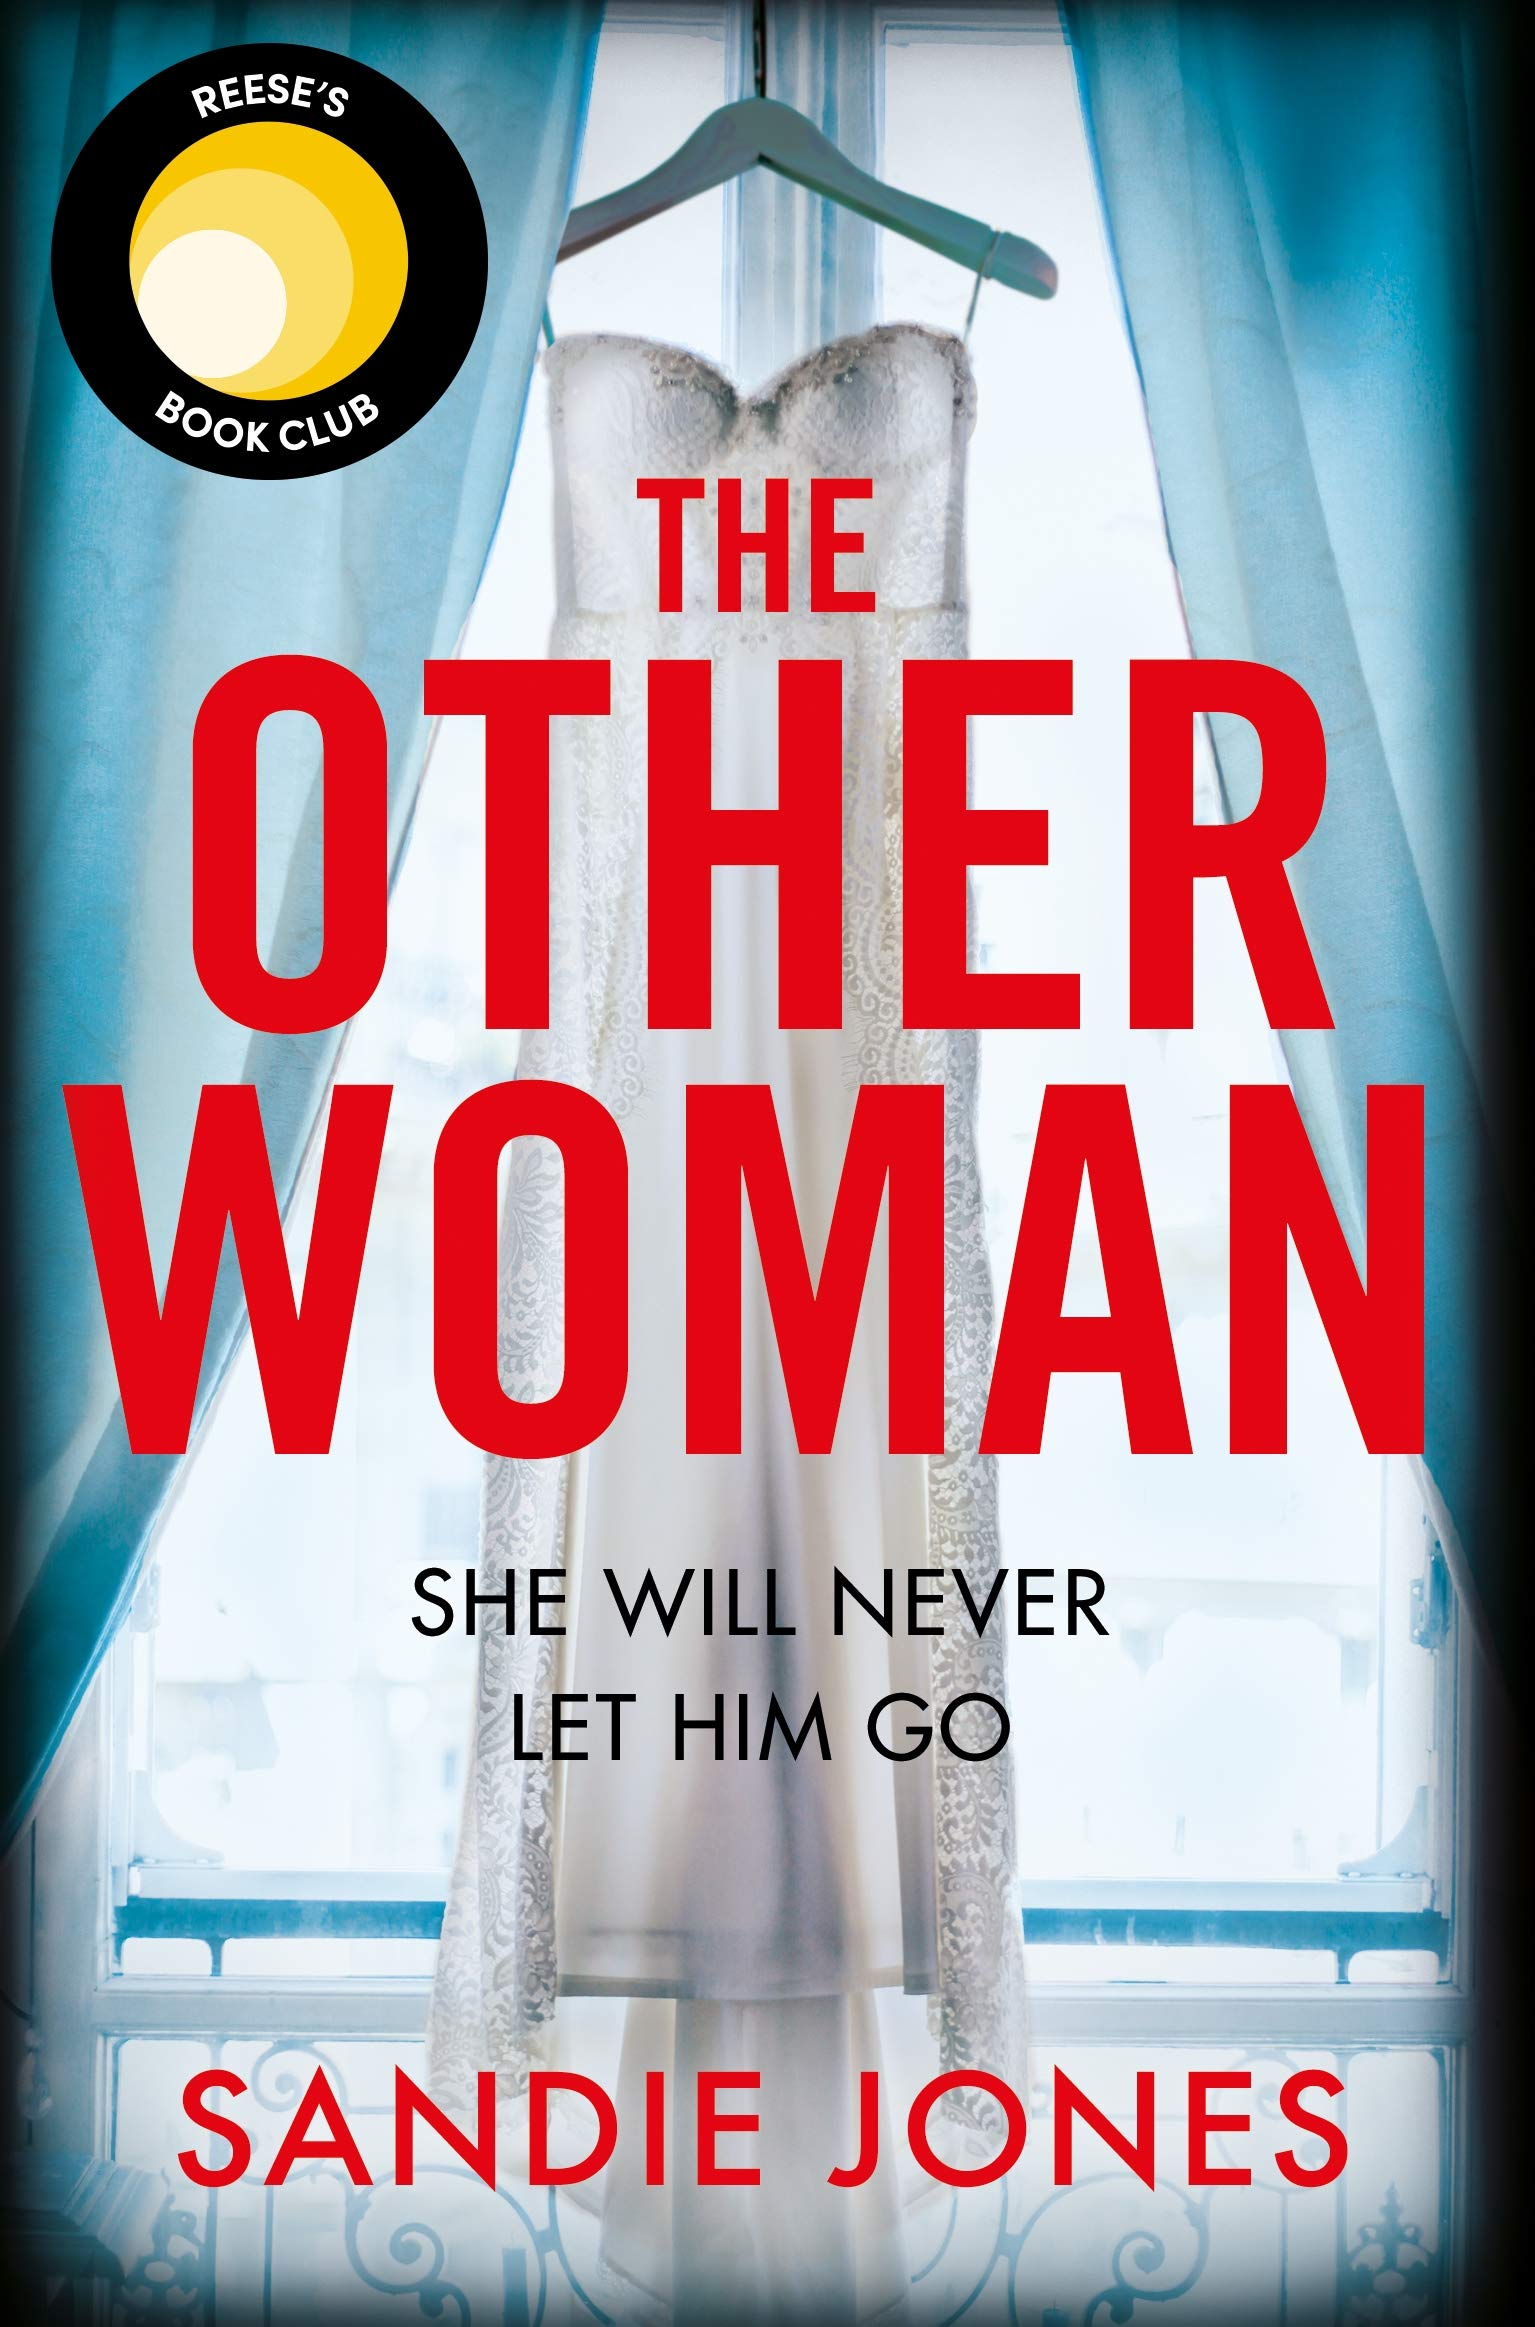 The Other Woman: Amazon.es: Jones, Sandie: Libros en idiomas extranjeros